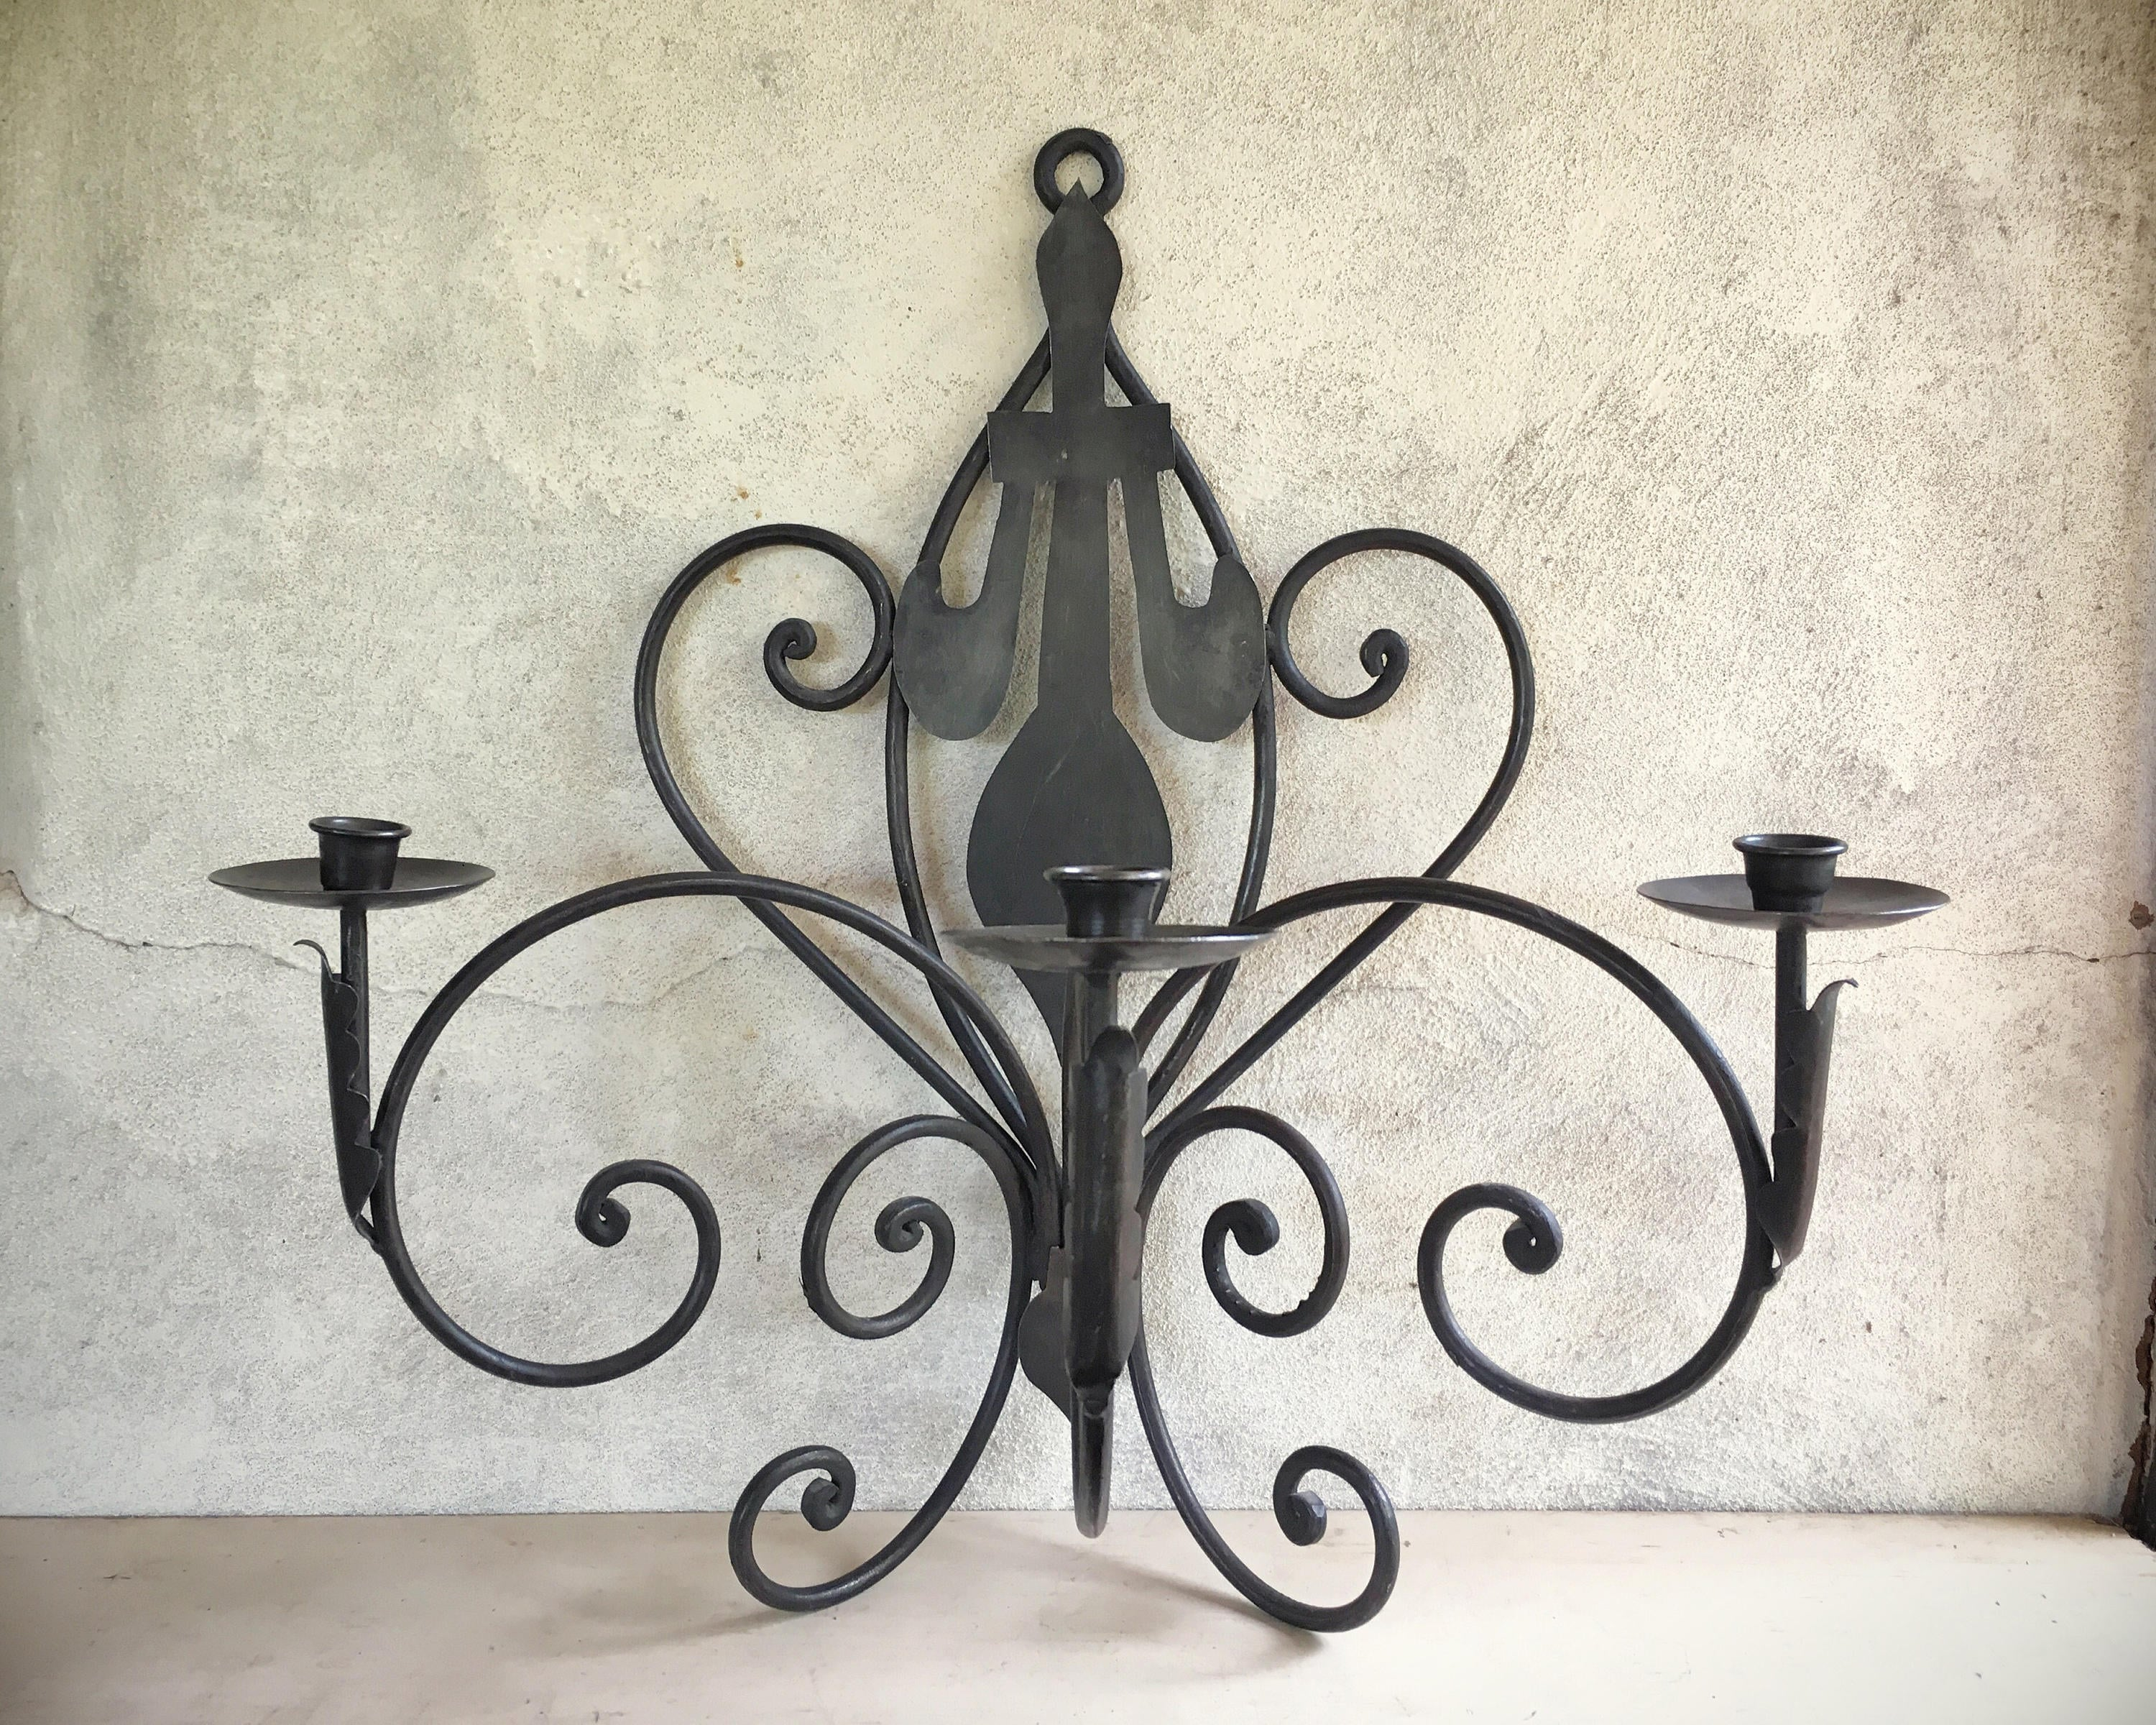 Large Vintage Rustic Candle Sconce Decorative Wall Sconce ... on Large Wall Sconces Candle Holders Decorative id=86958